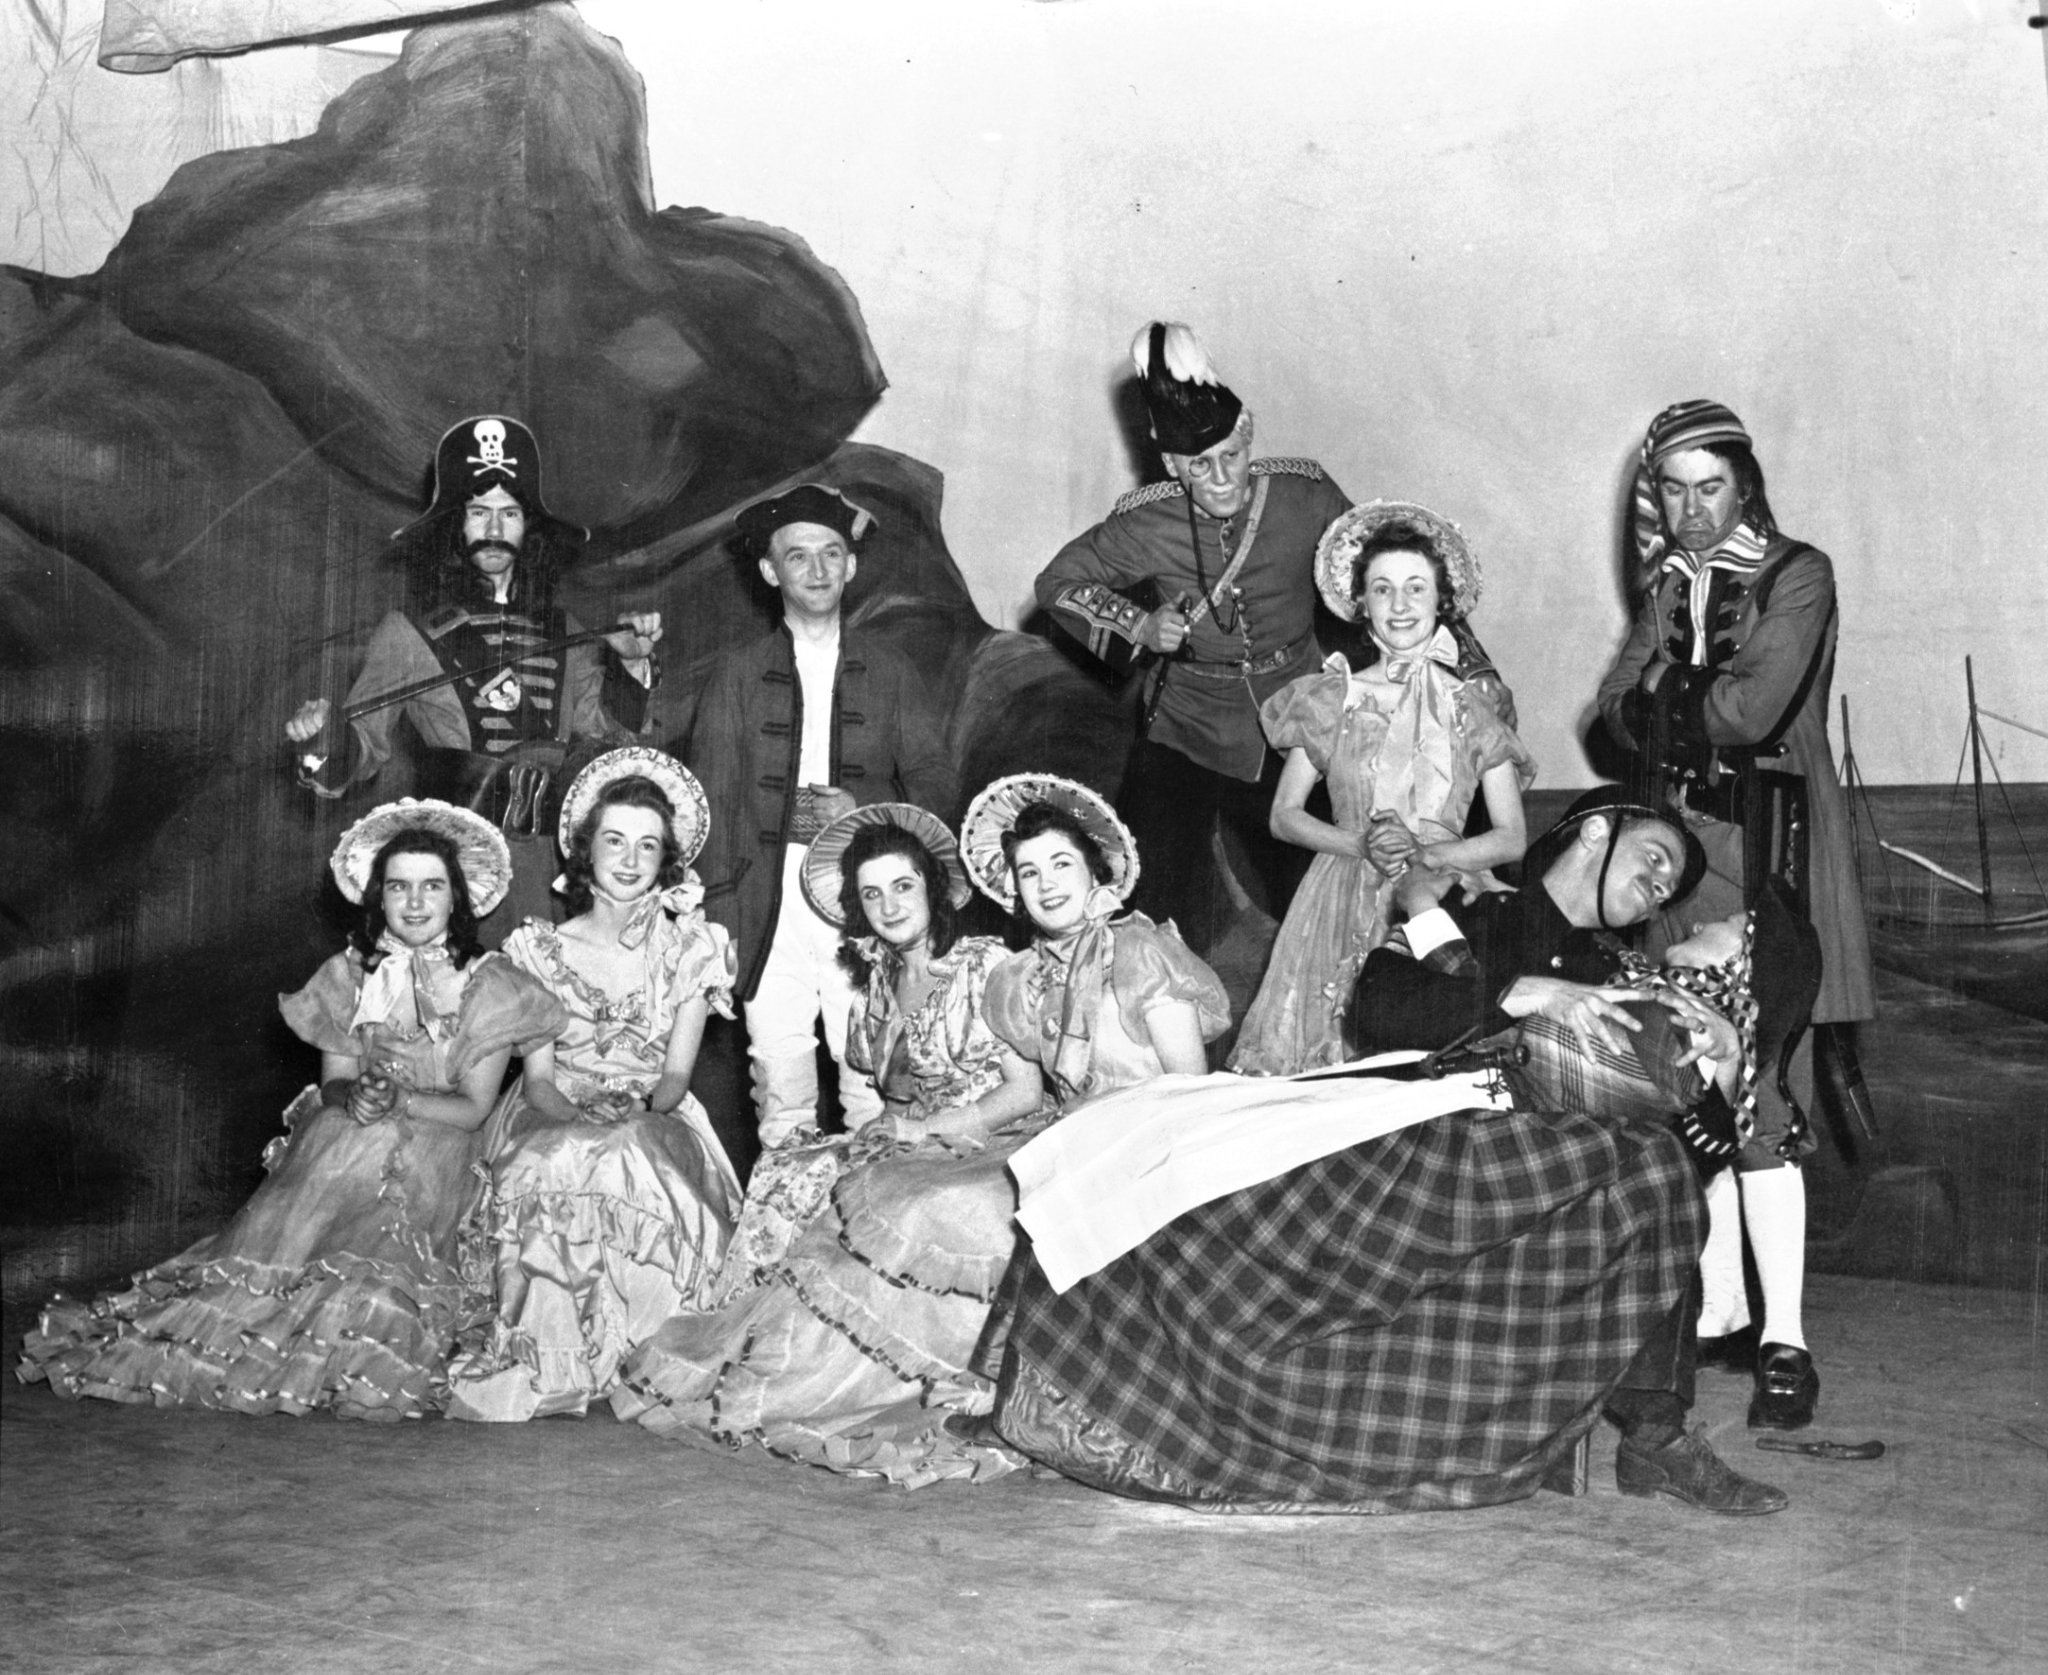 Black and white photo. Two rows of performers pose for the camera on stage. A rock and ship's masts are painted behind them. The men wear military uniforms and the women wear long frilly dresses with bonnets.